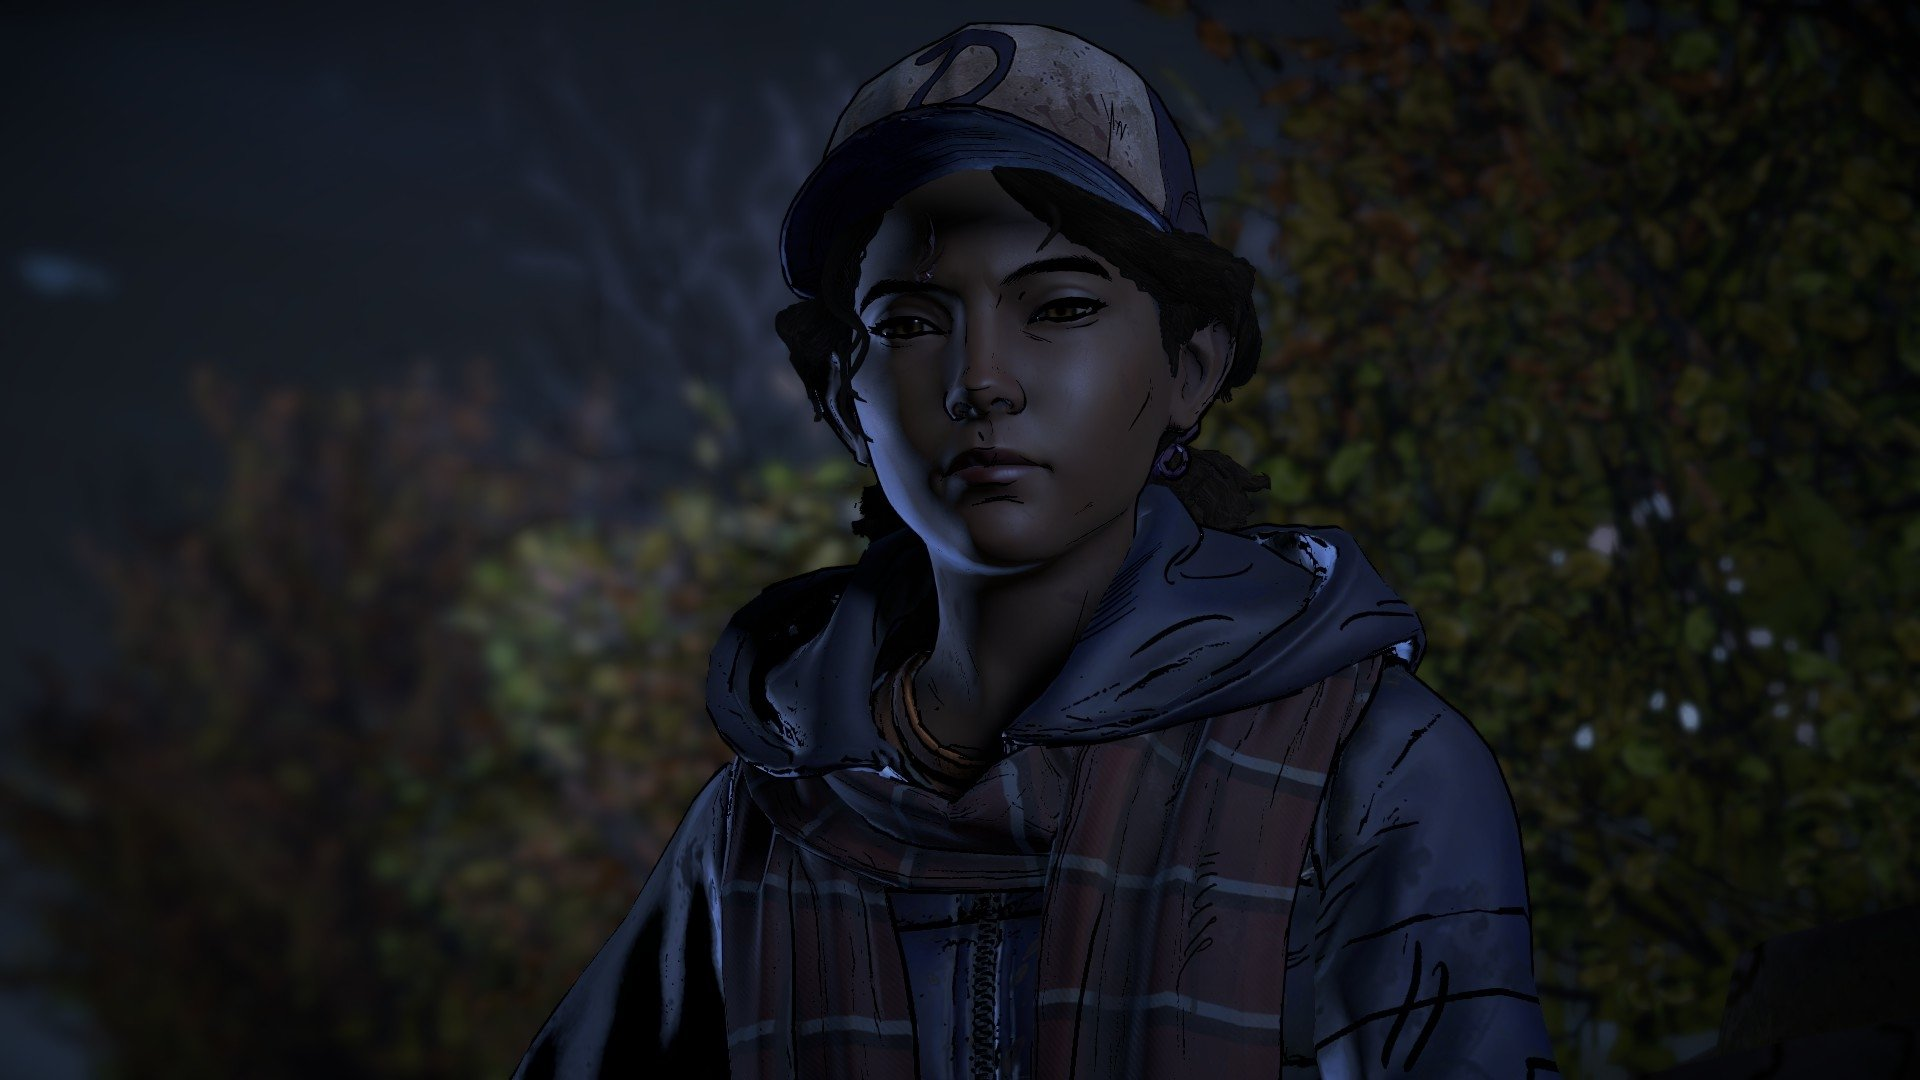 Hd Wallpaper Clementine Walking Dead Facebook Cover